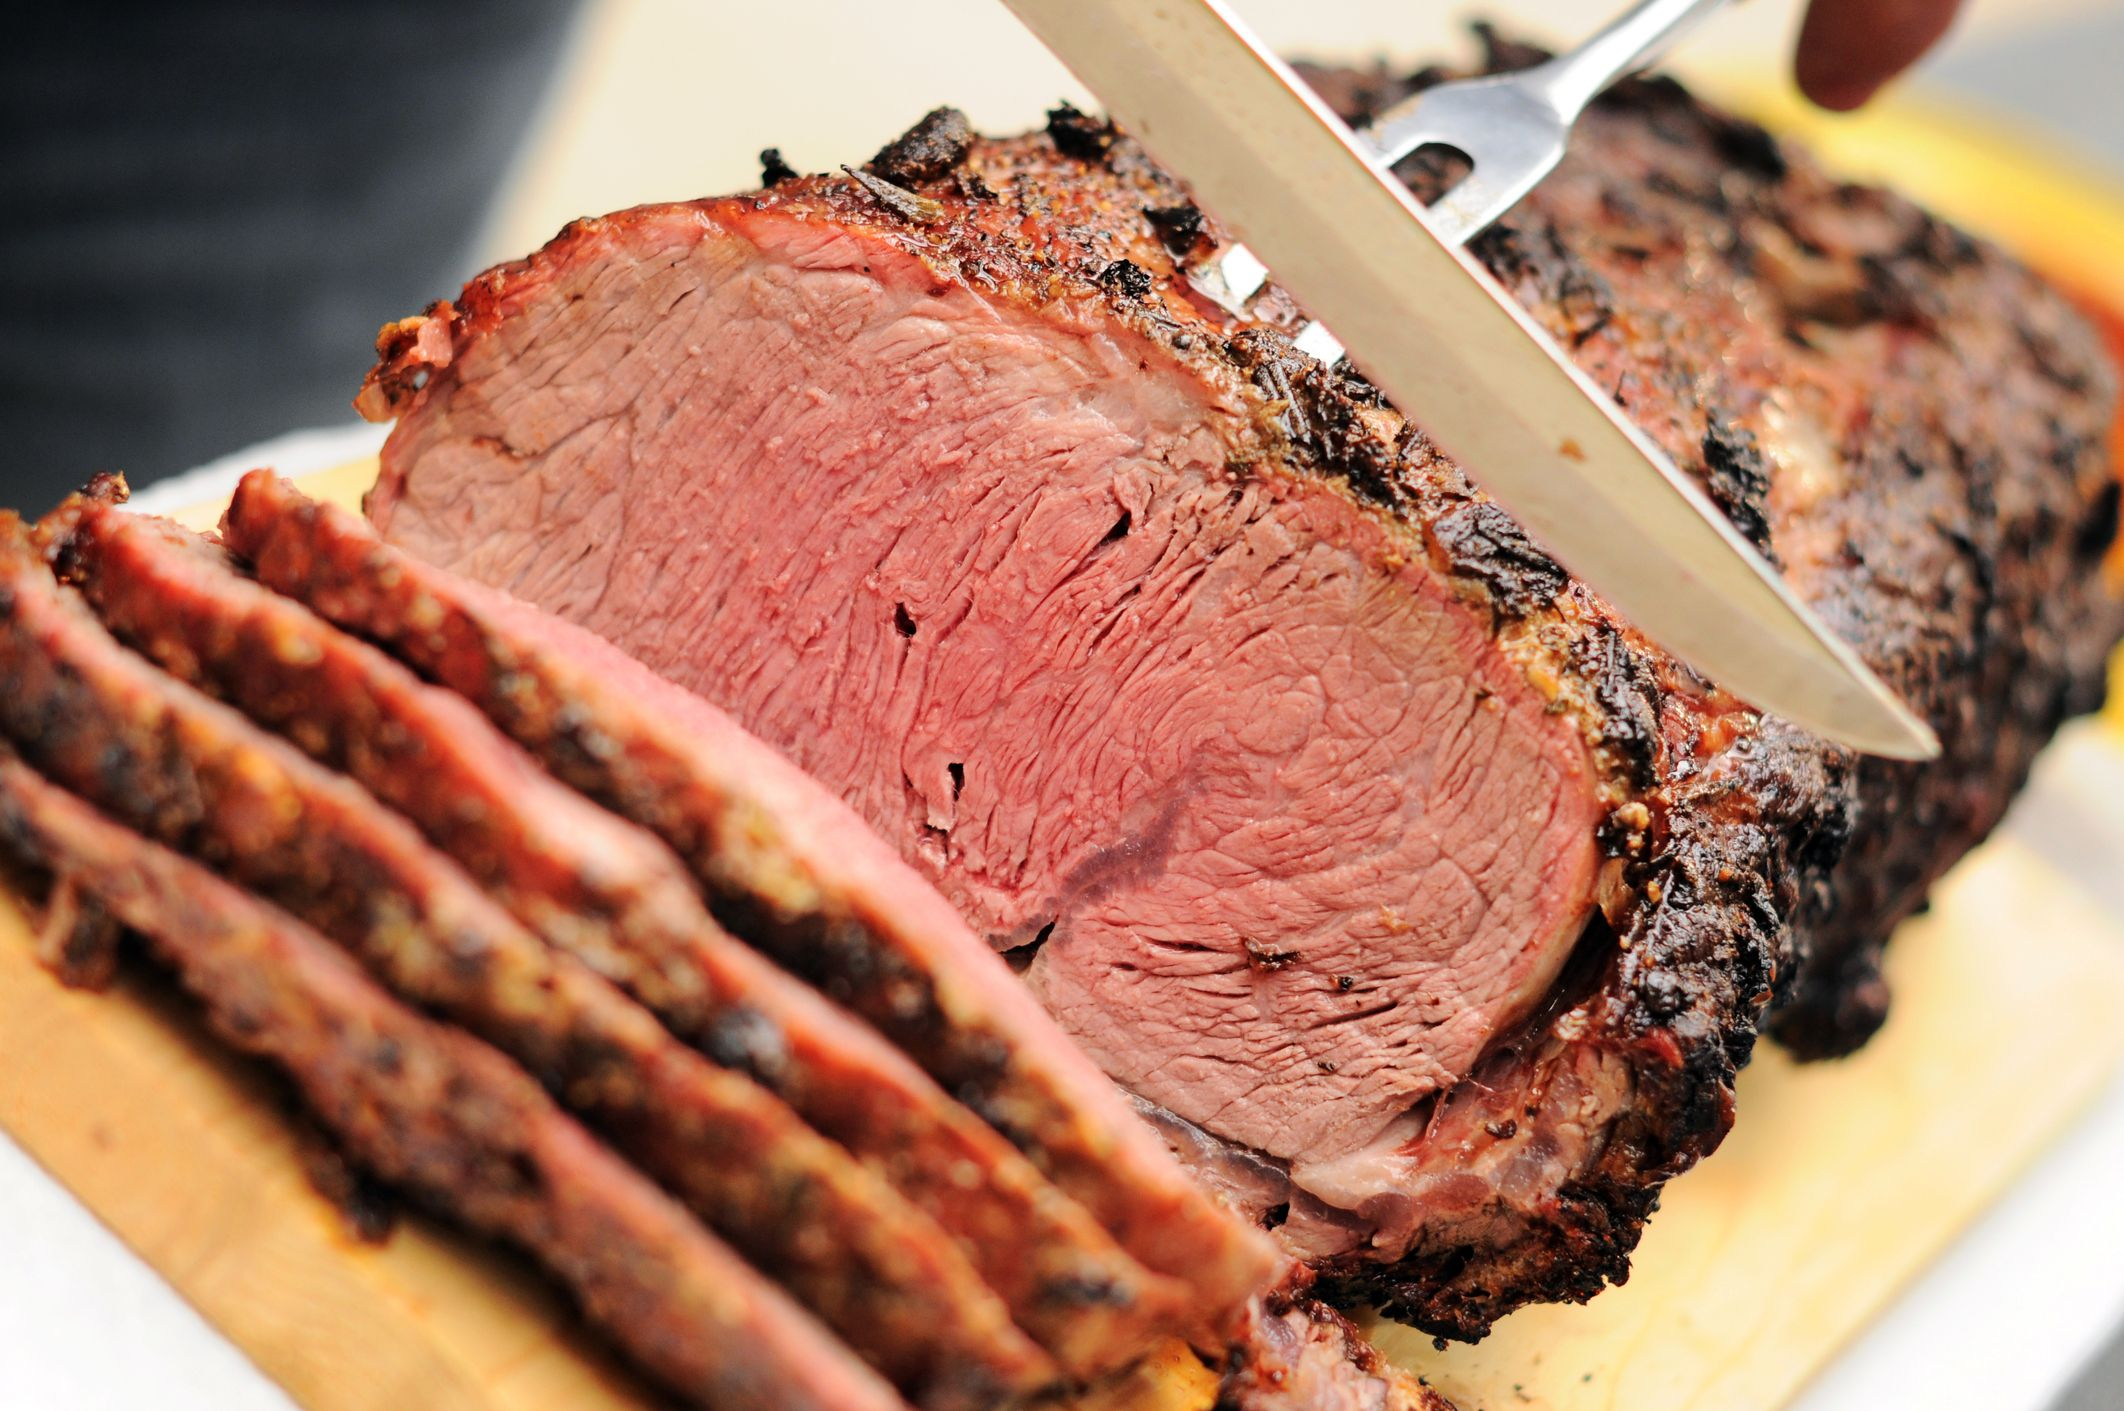 How to cook roast beef - 4 rules for the perfect roast beef every time